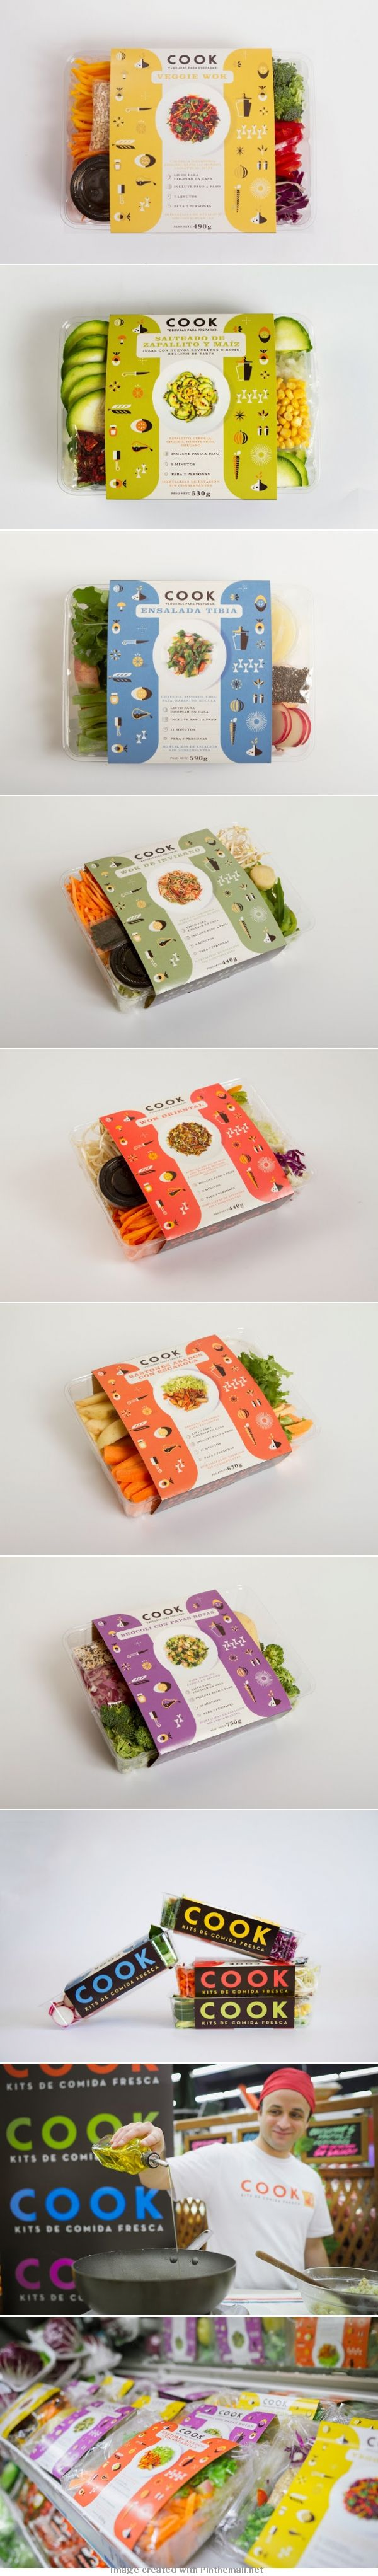 COOK Agency: Mundial Designer: Francisco Cunha y Martín Azambuja Client: Cook Country: Uruguay  #Packaging